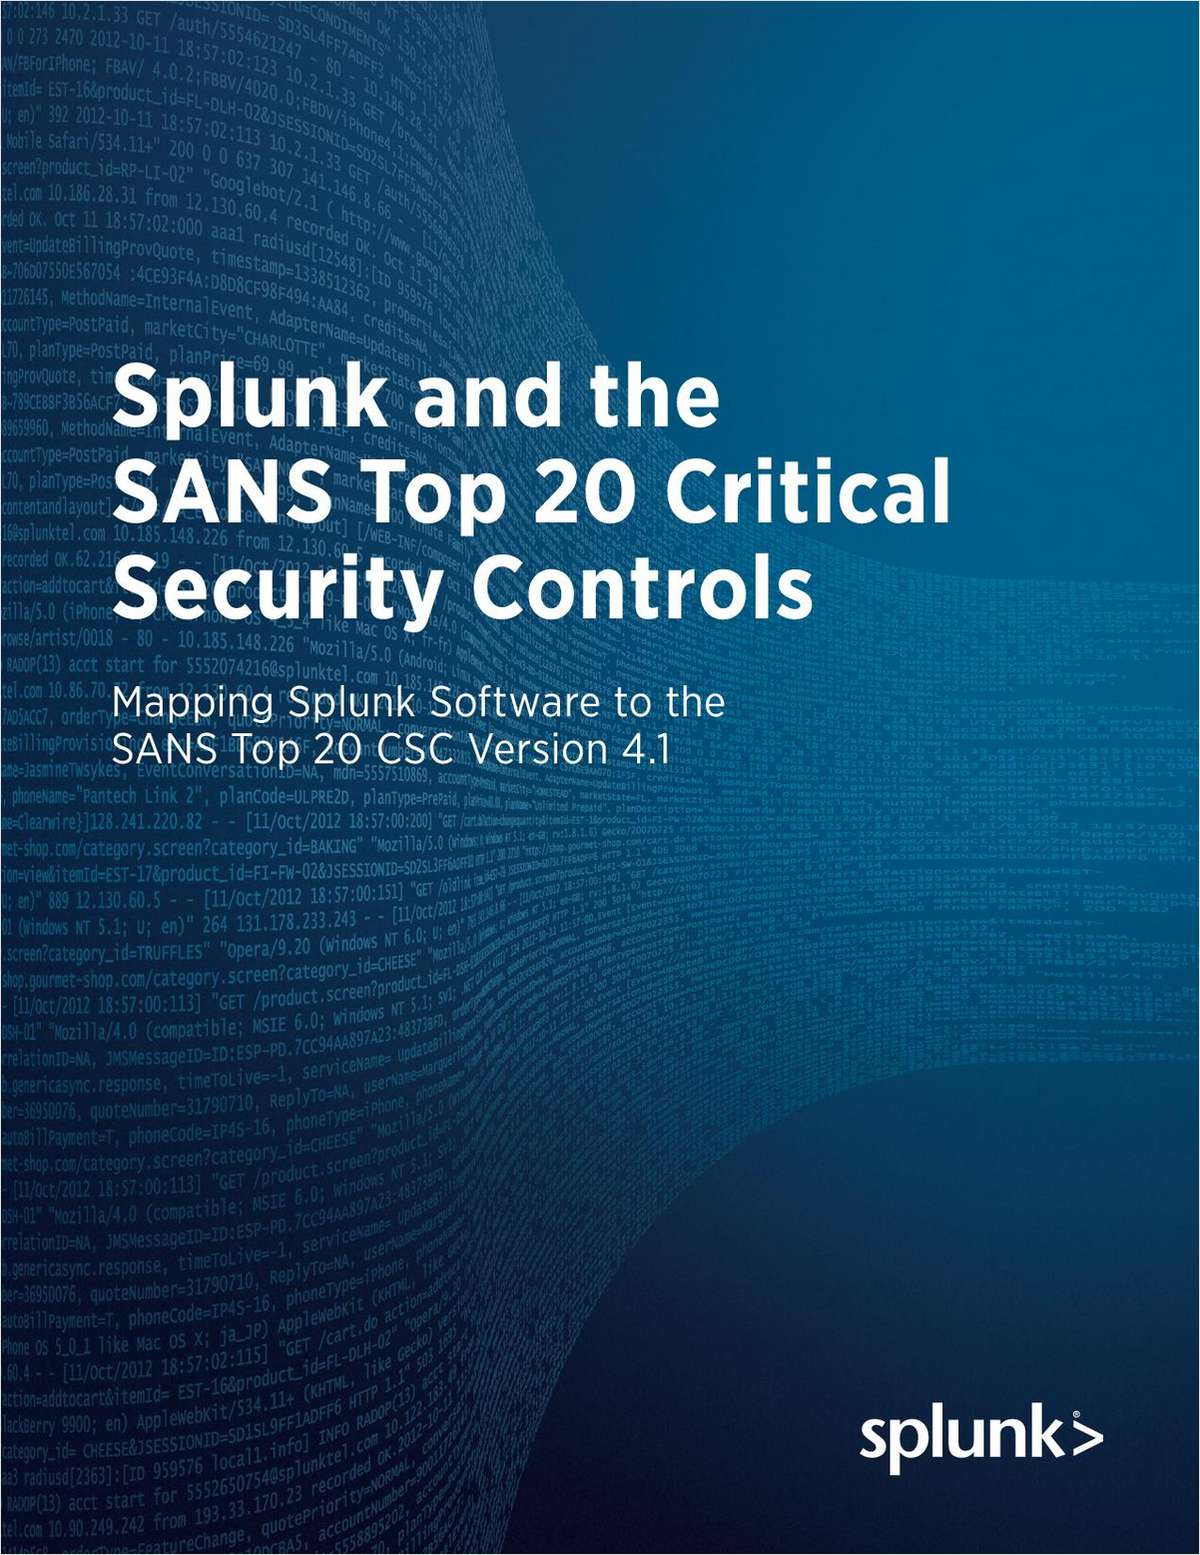 Have you Implemented the SANS Top 20 Critical Security Controls?